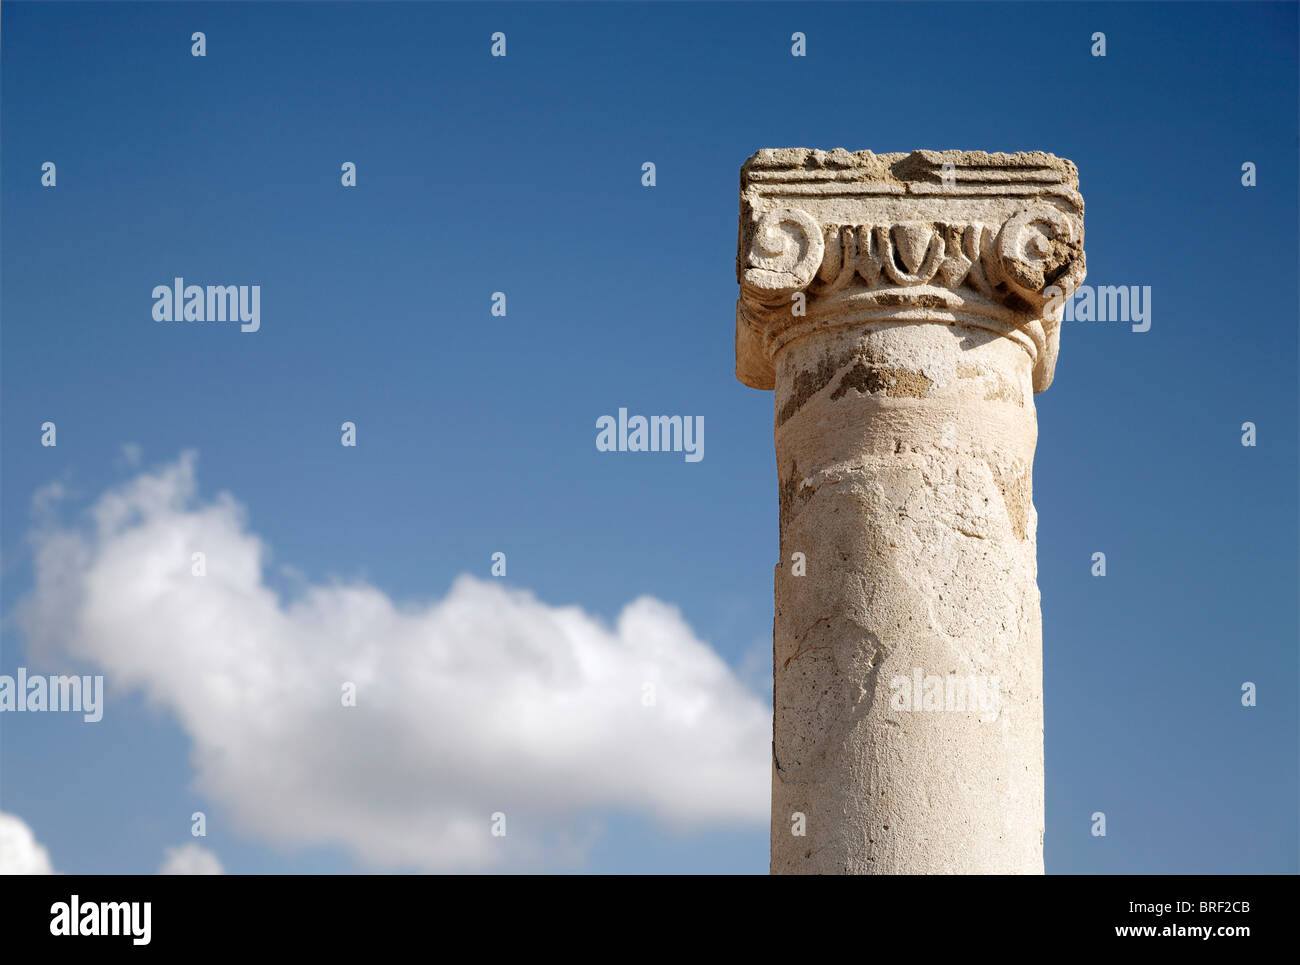 Ancient Greek column, capital, abacus, blue sky, white clouds, UNESCO World Heritage Site, Kato, Paphos, Pafos, - Stock Image